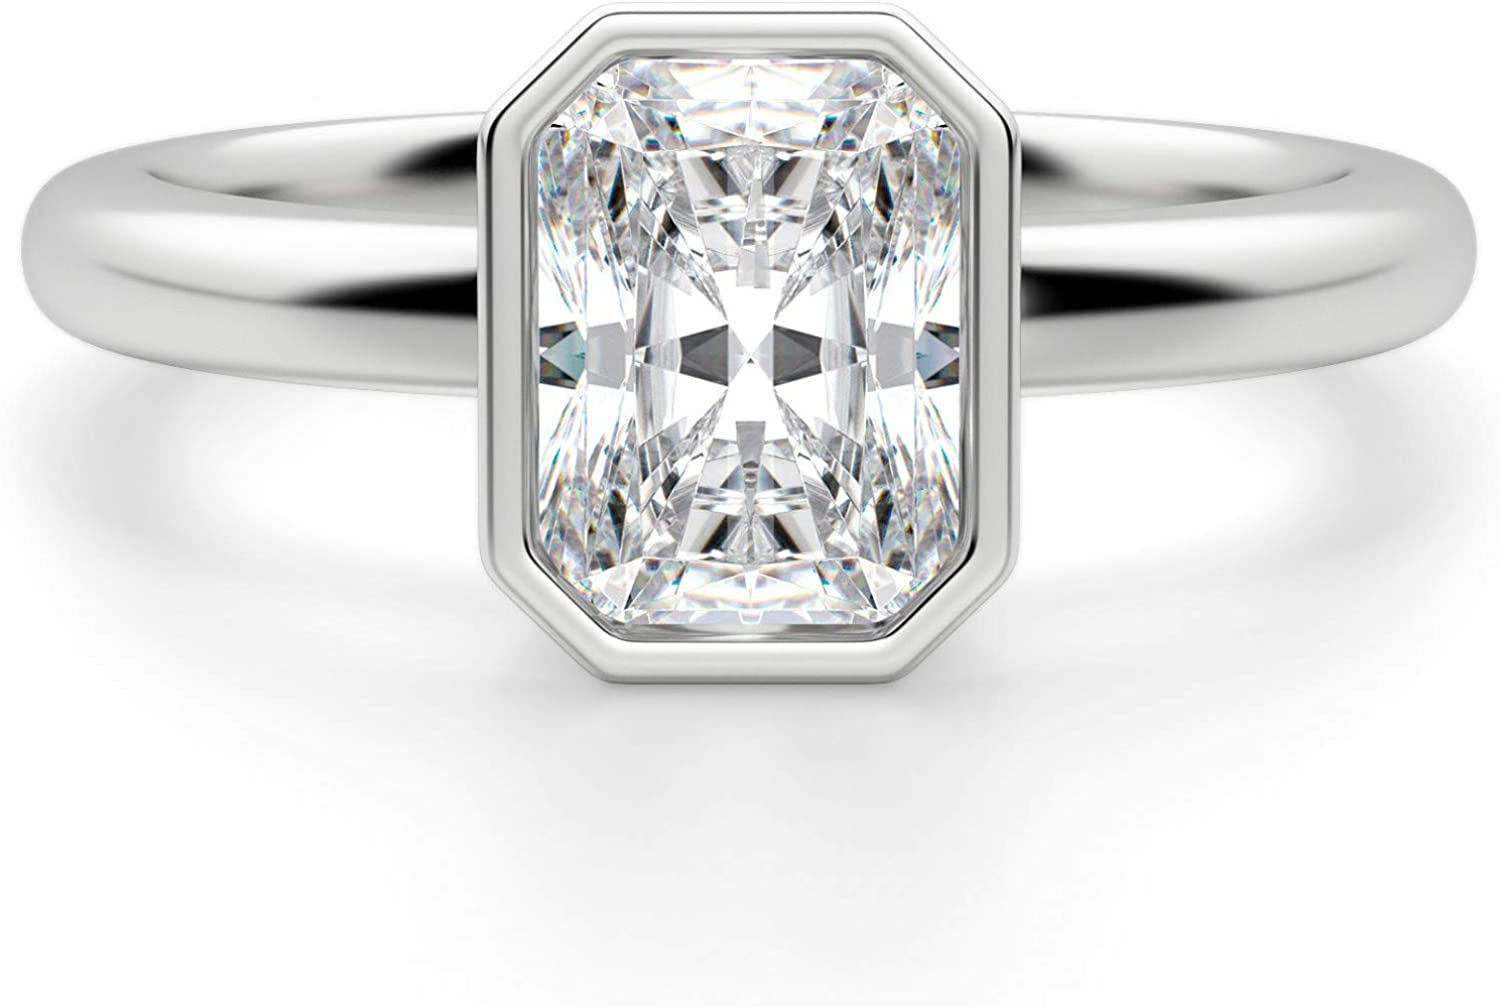 Mossojewels Promise Ring 2.23 CT Radiant Cut DEF Moissanite Engagement /& Wedding Ring White 1418k Gold Radiant Solitaire Engagement Ring